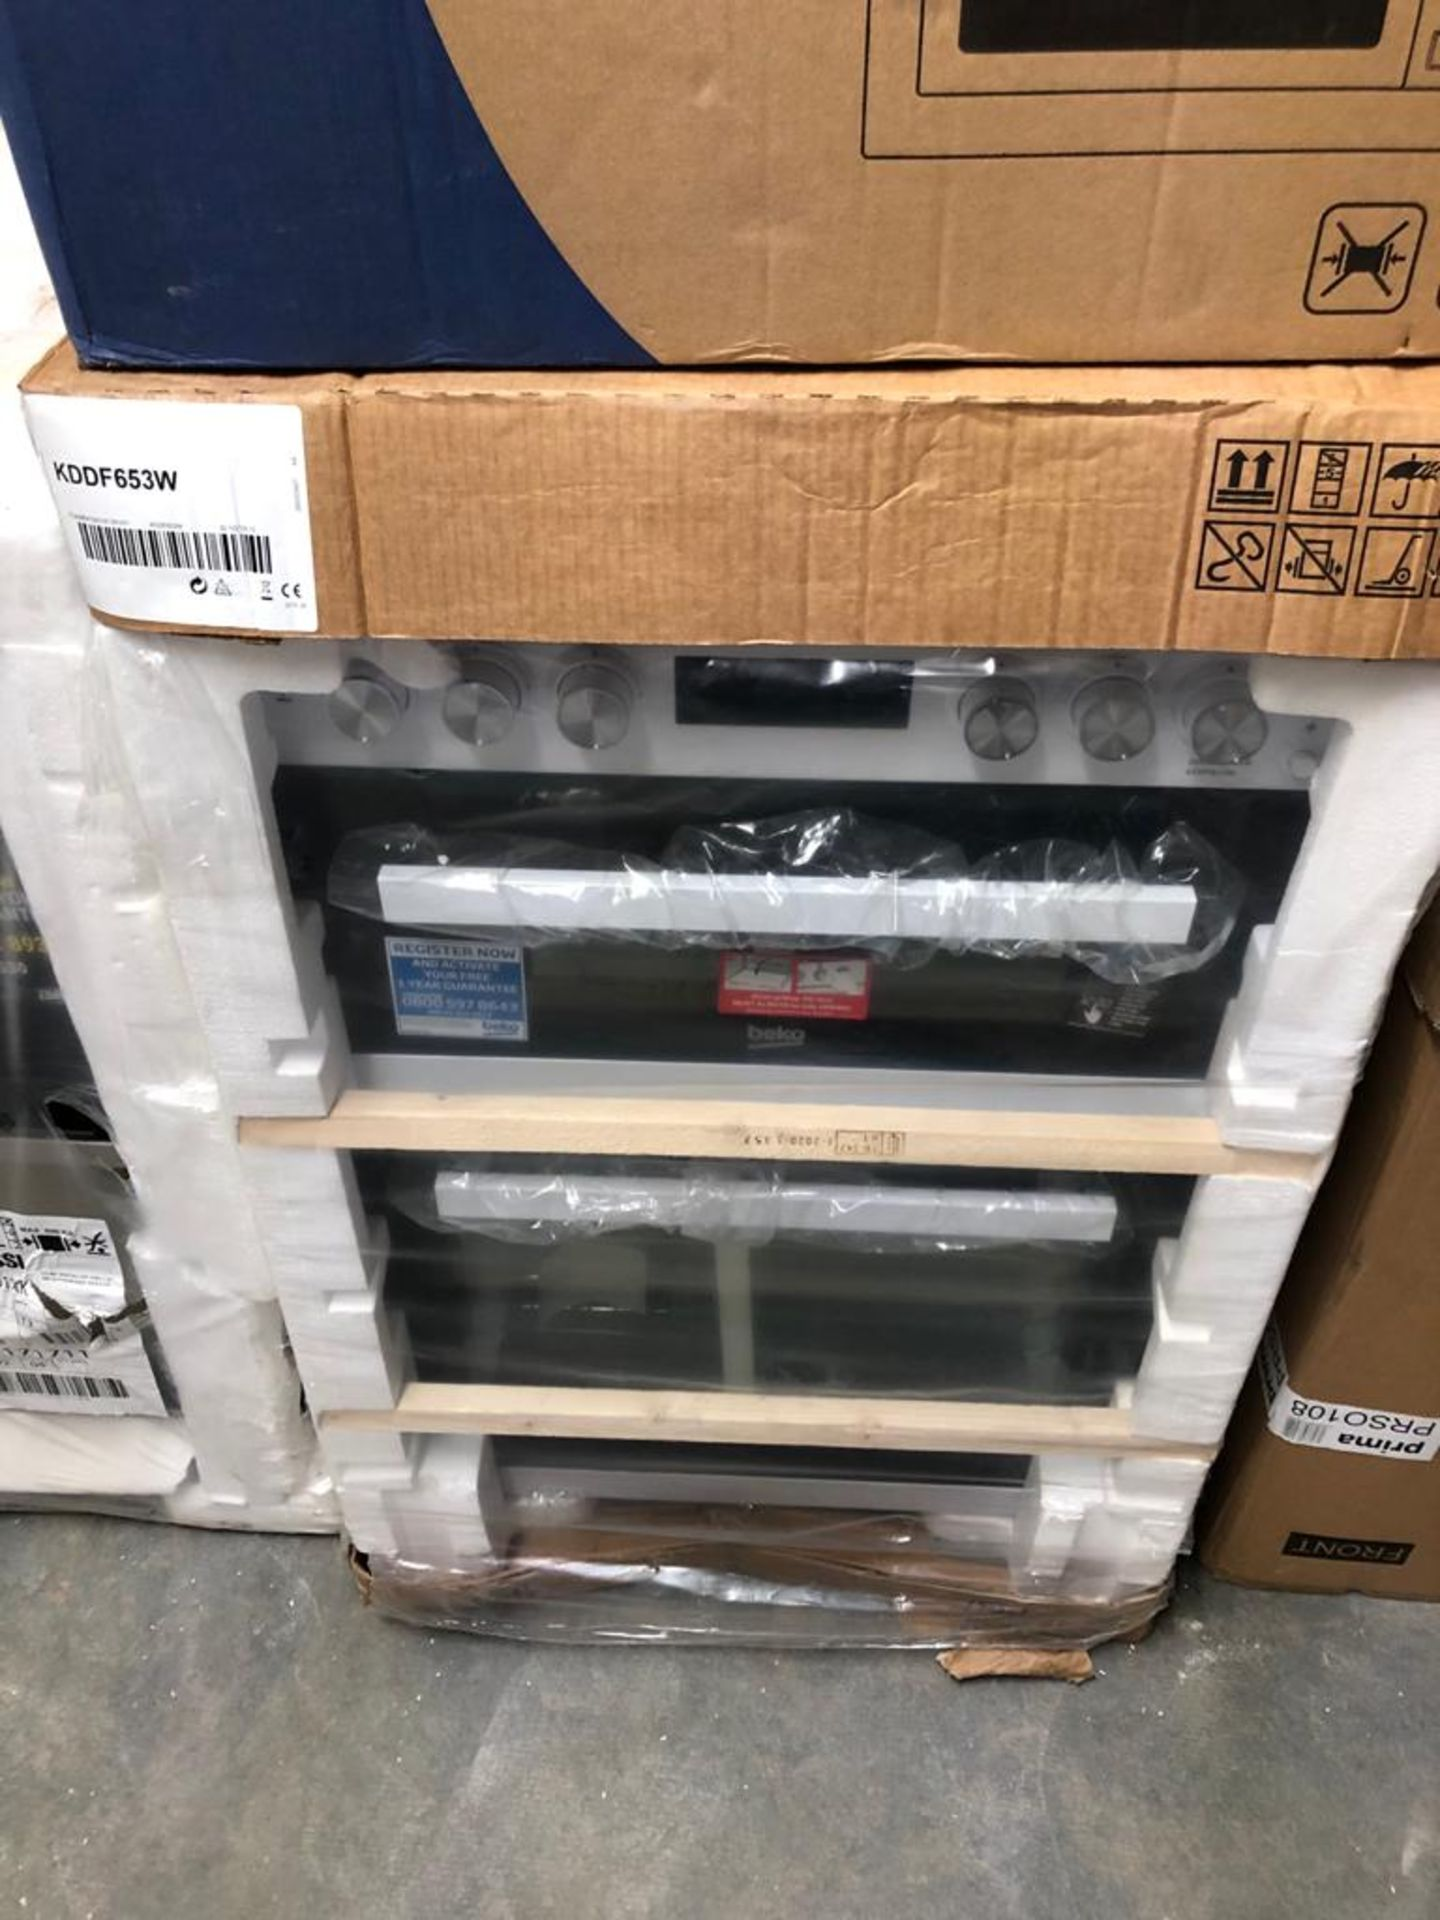 BRAND NEW PACKAGED Beko KDDF653W 60cm Dual Fuel Cooker - White